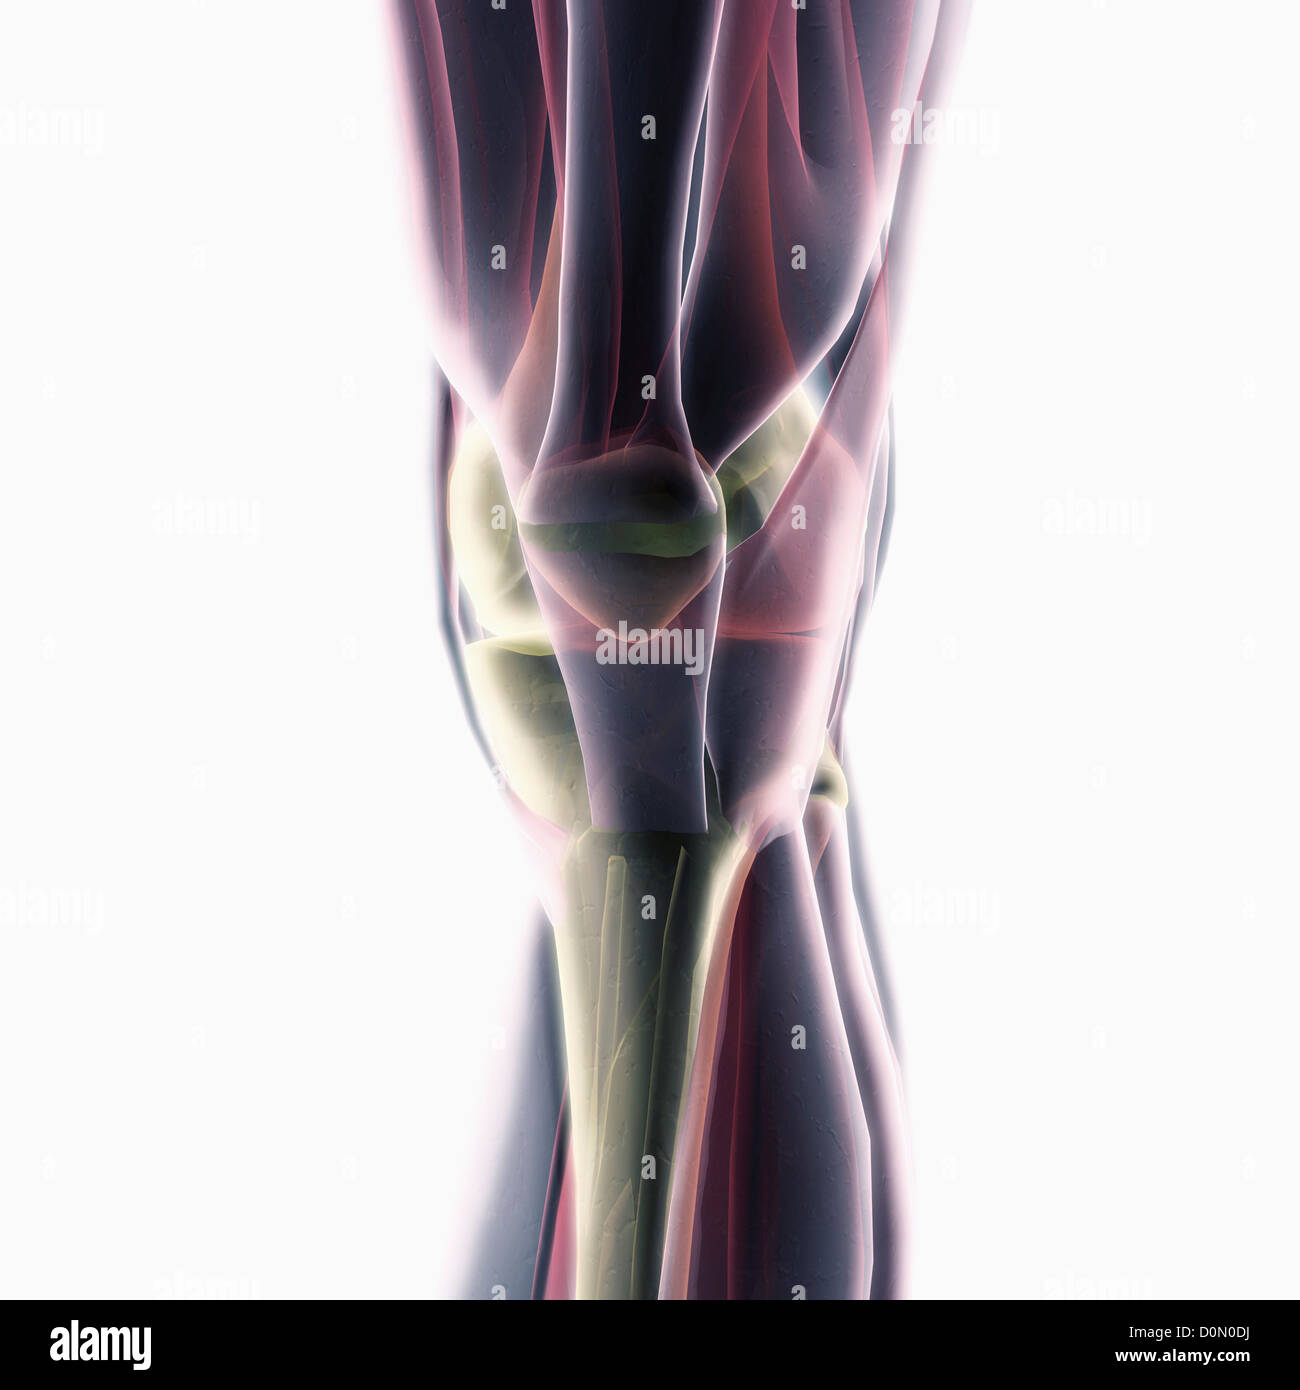 Anatomical Model Showing Muscular Structure Of The Knee Stock Photo